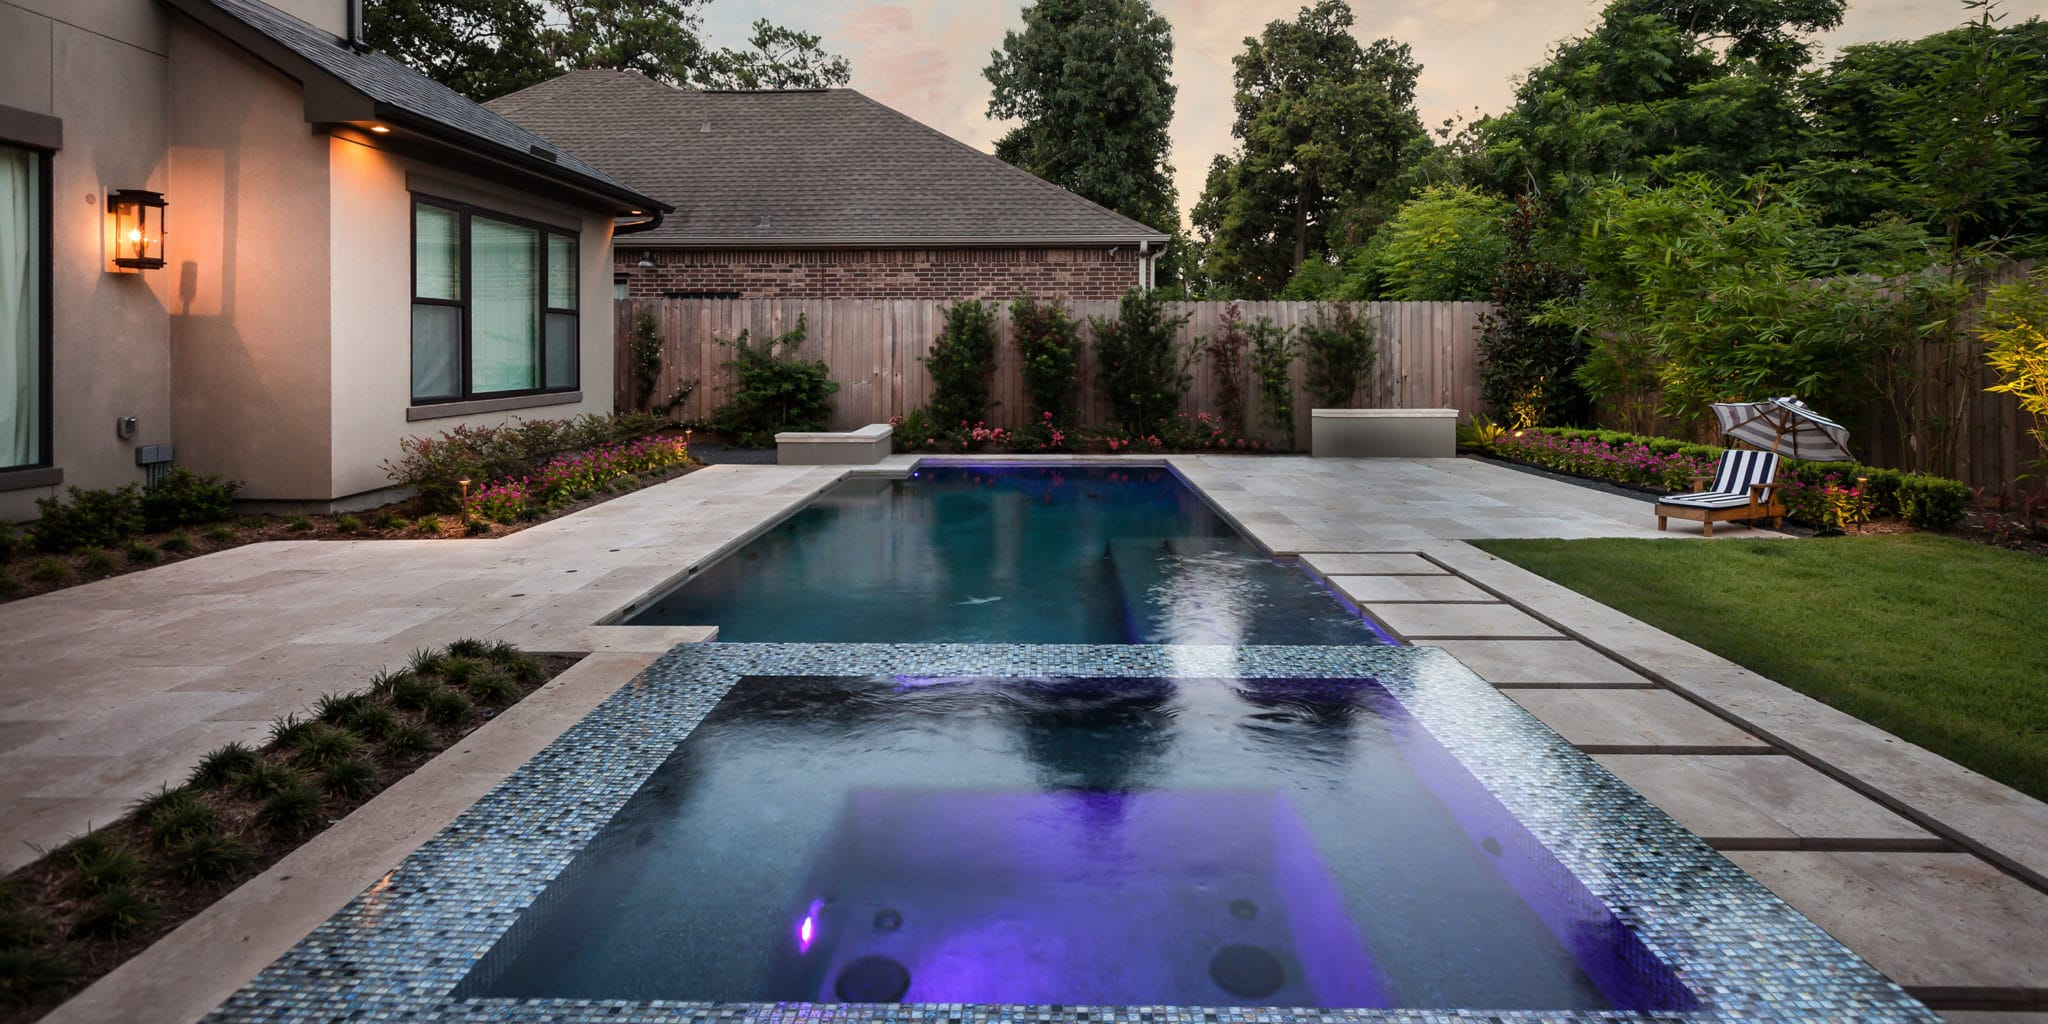 Swimming Pool Pictures, Designs And Ideas For Pool And